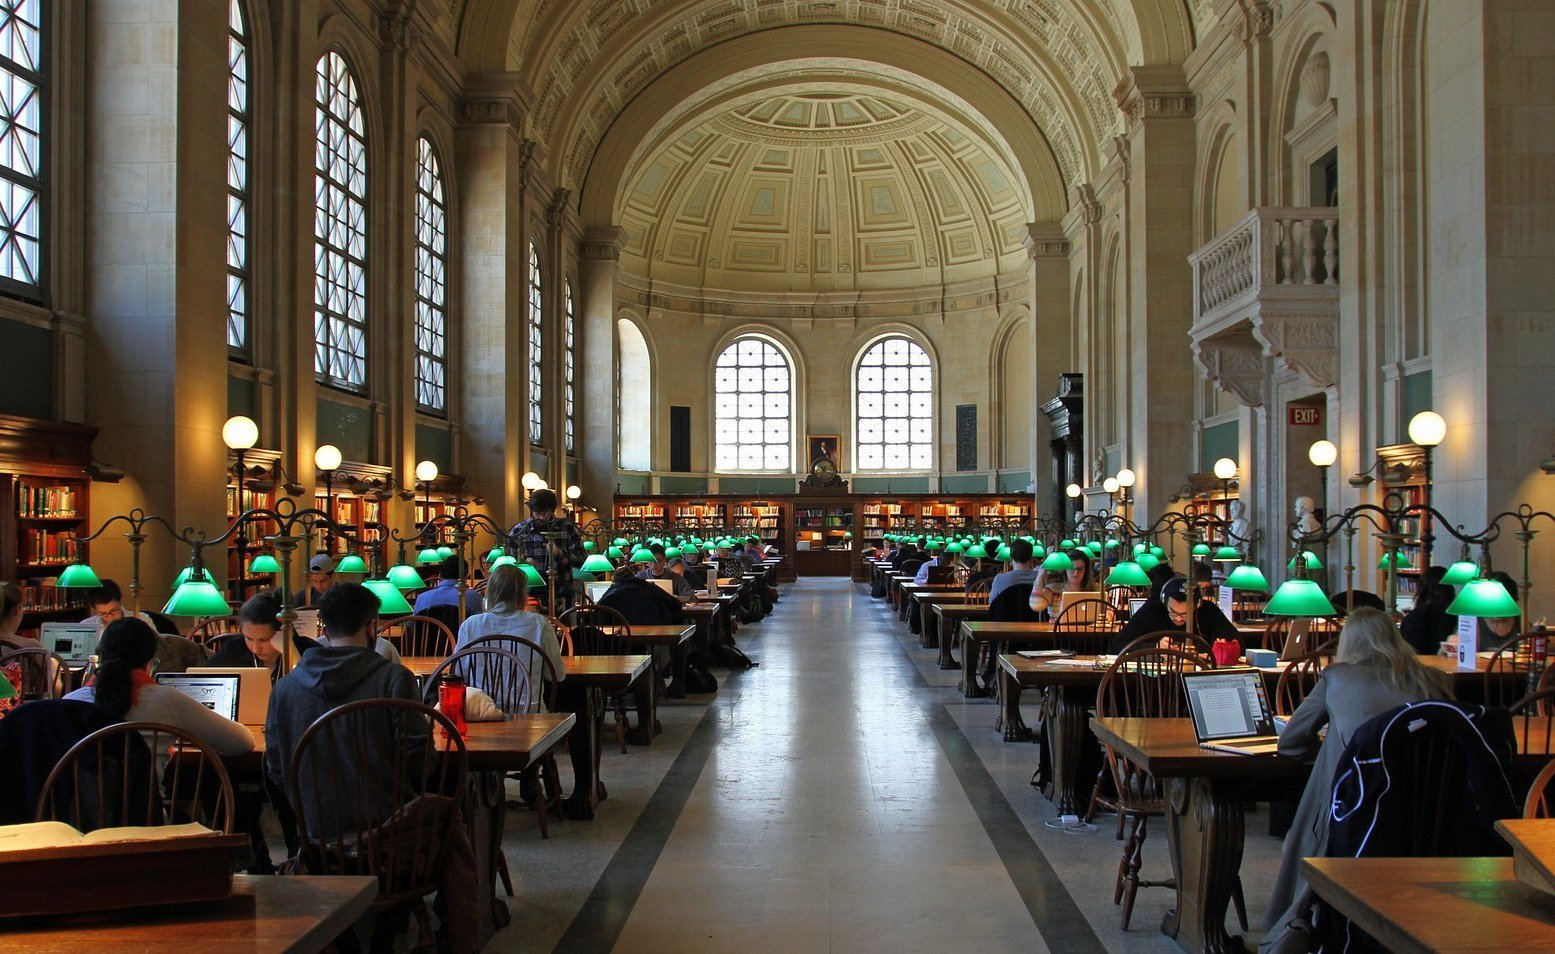 People working at tables in historical library.